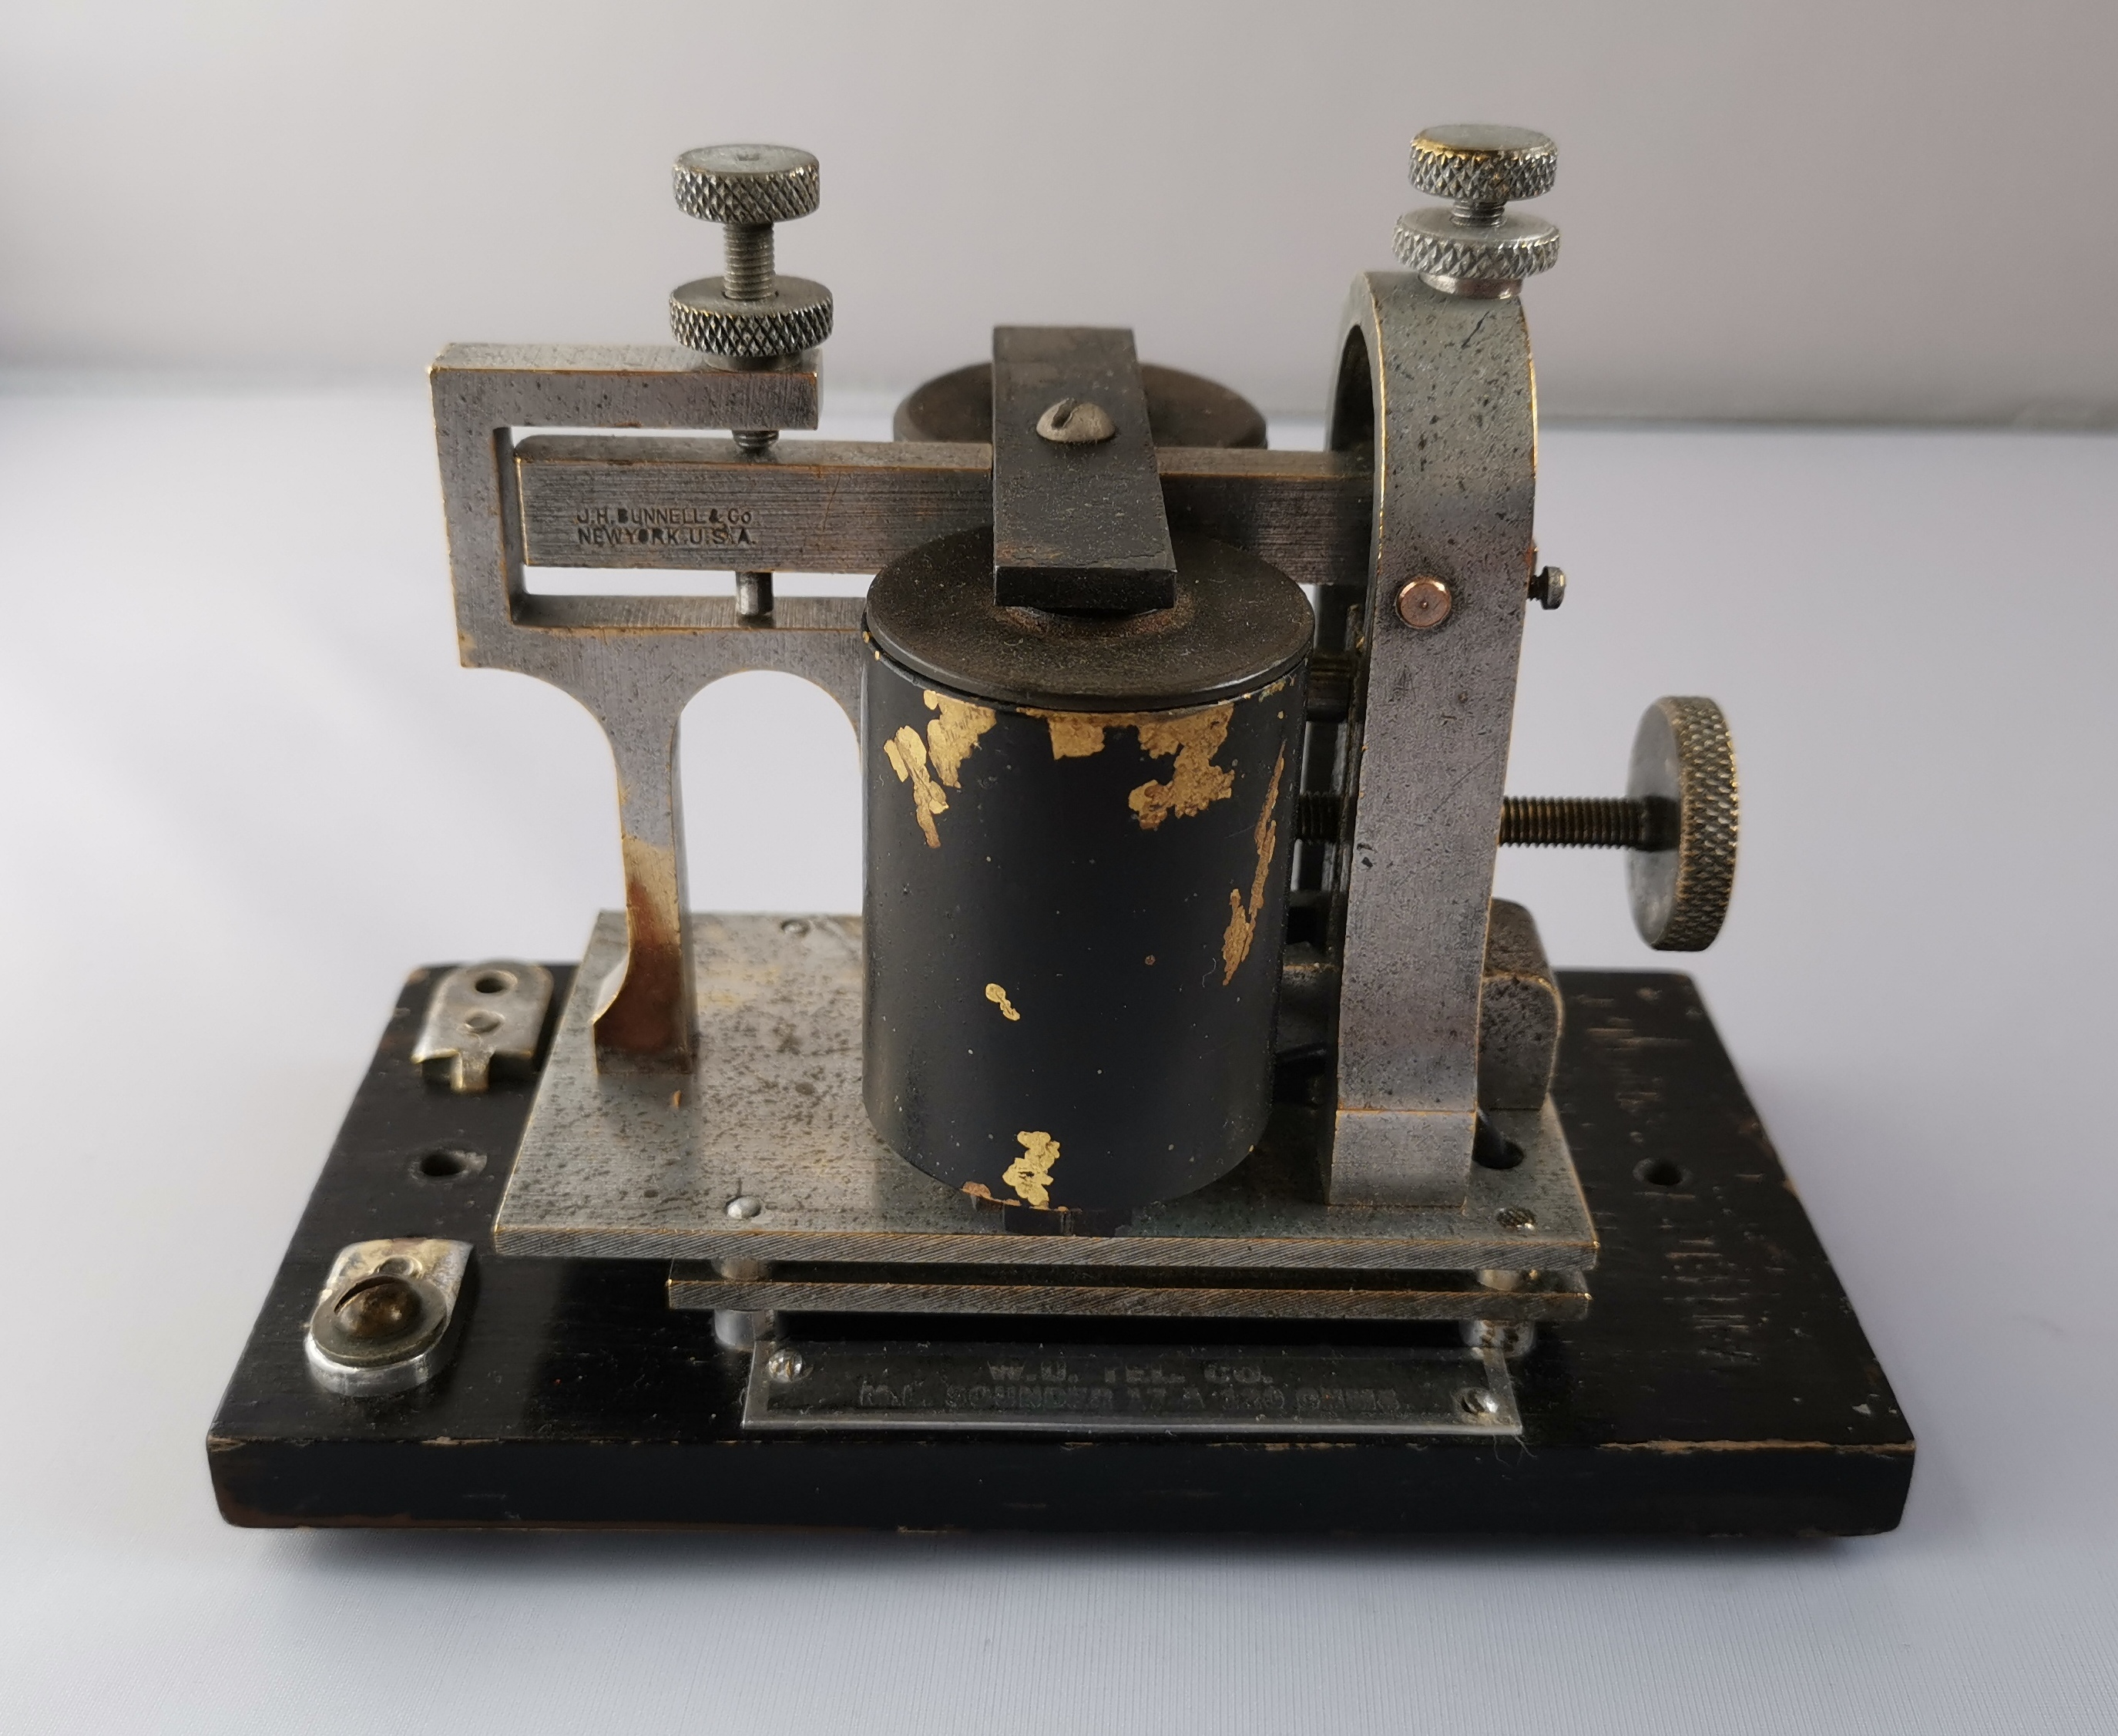 Morse Telegraph Key Collection on